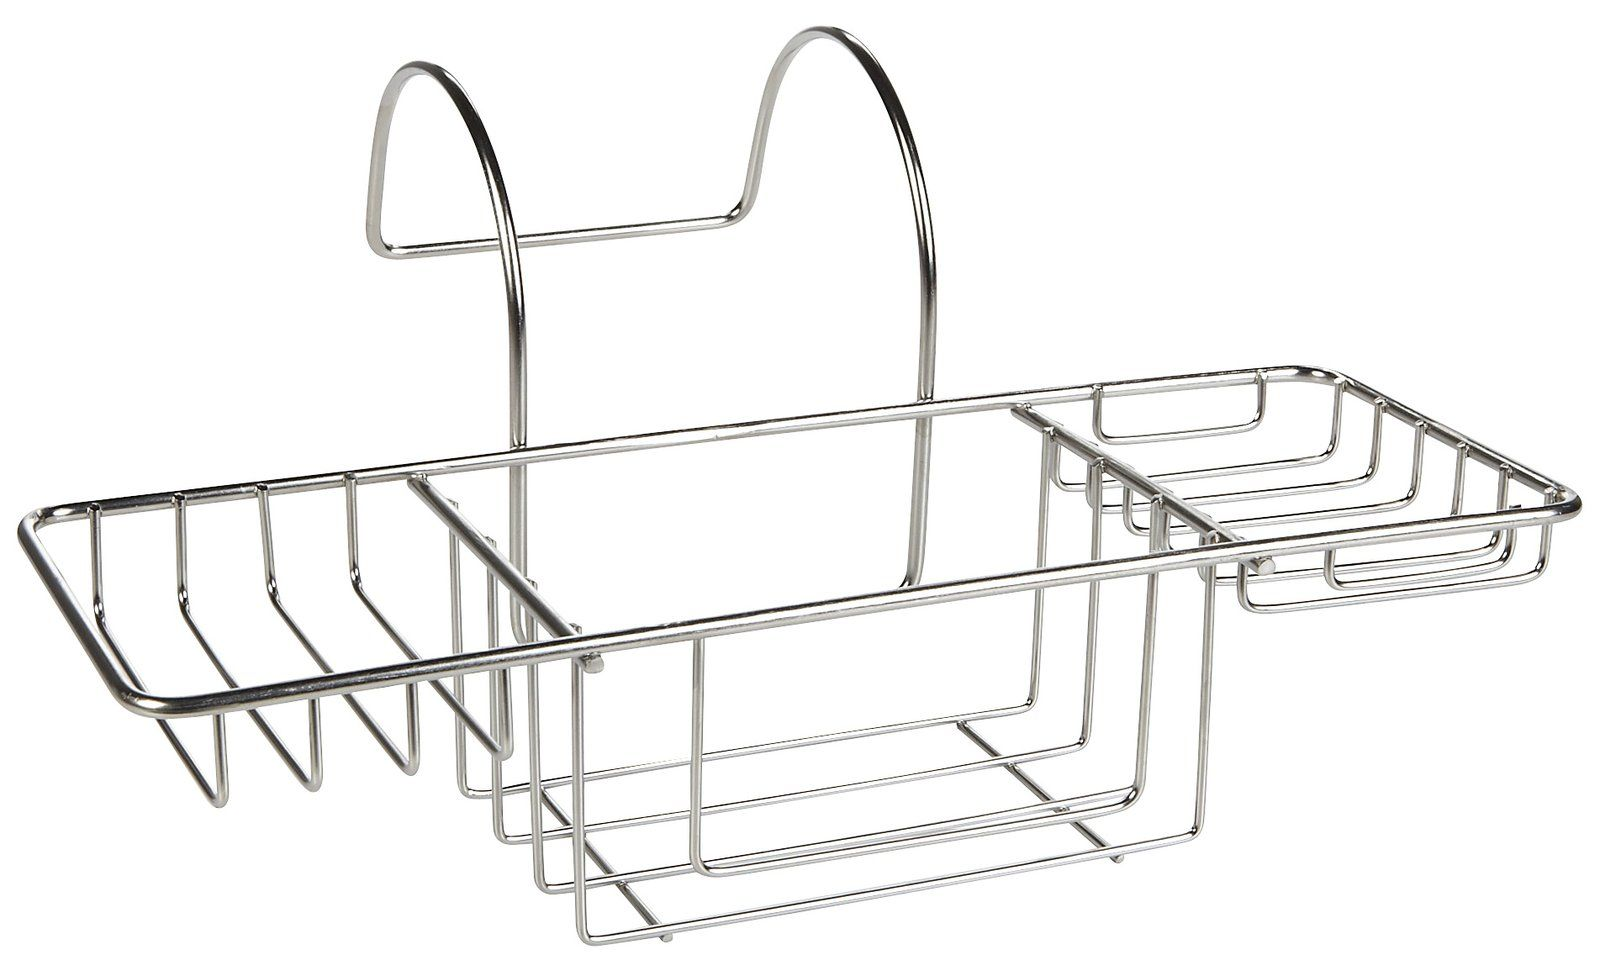 Awesome Bathtub Accessories Caddy Collection - Bathroom and Shower ...